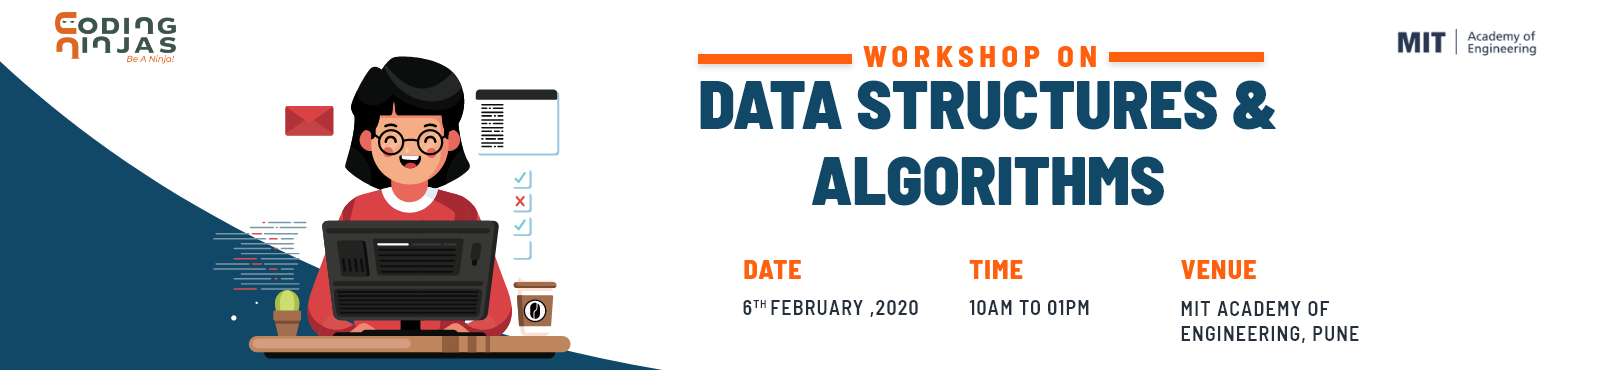 Data Structure and Algorithms workshop at MIT Academy of Engineering, Pune